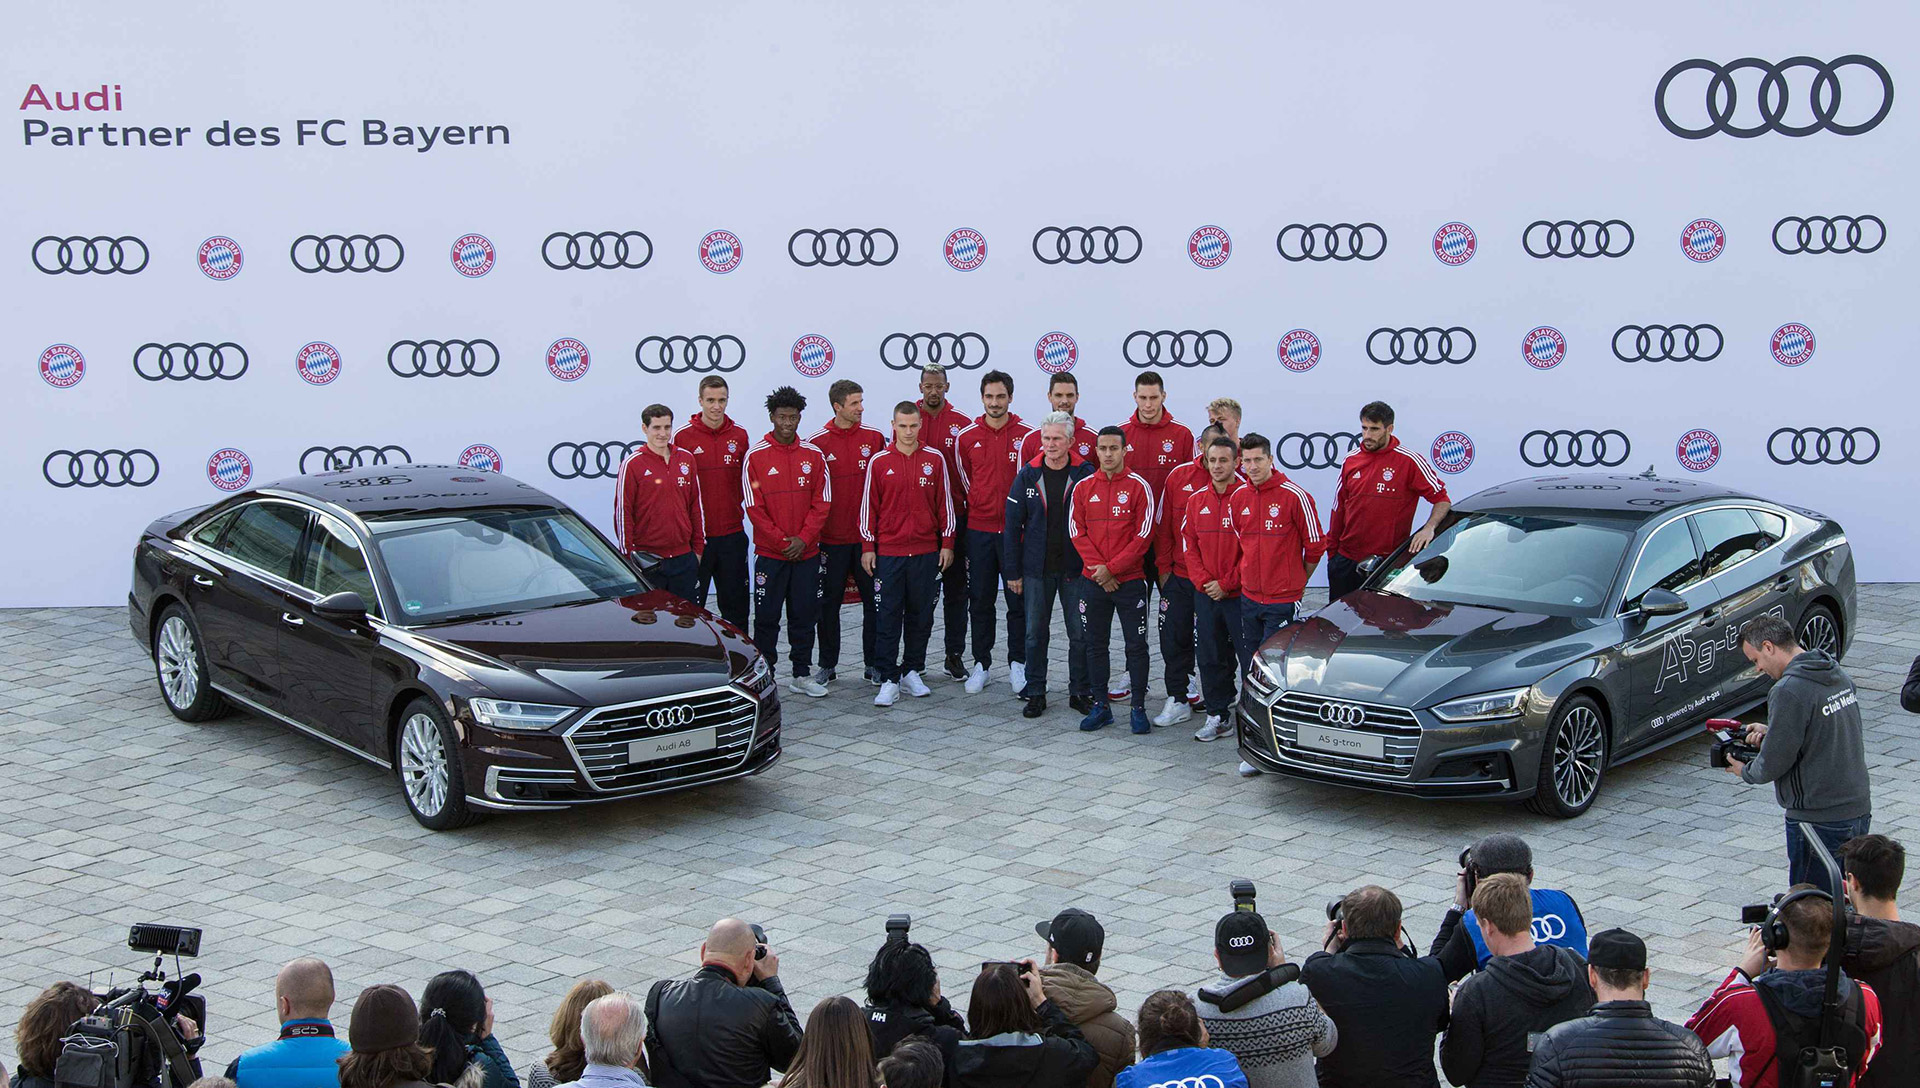 New-company-cars-for-the-FC-Bayern-Munchen